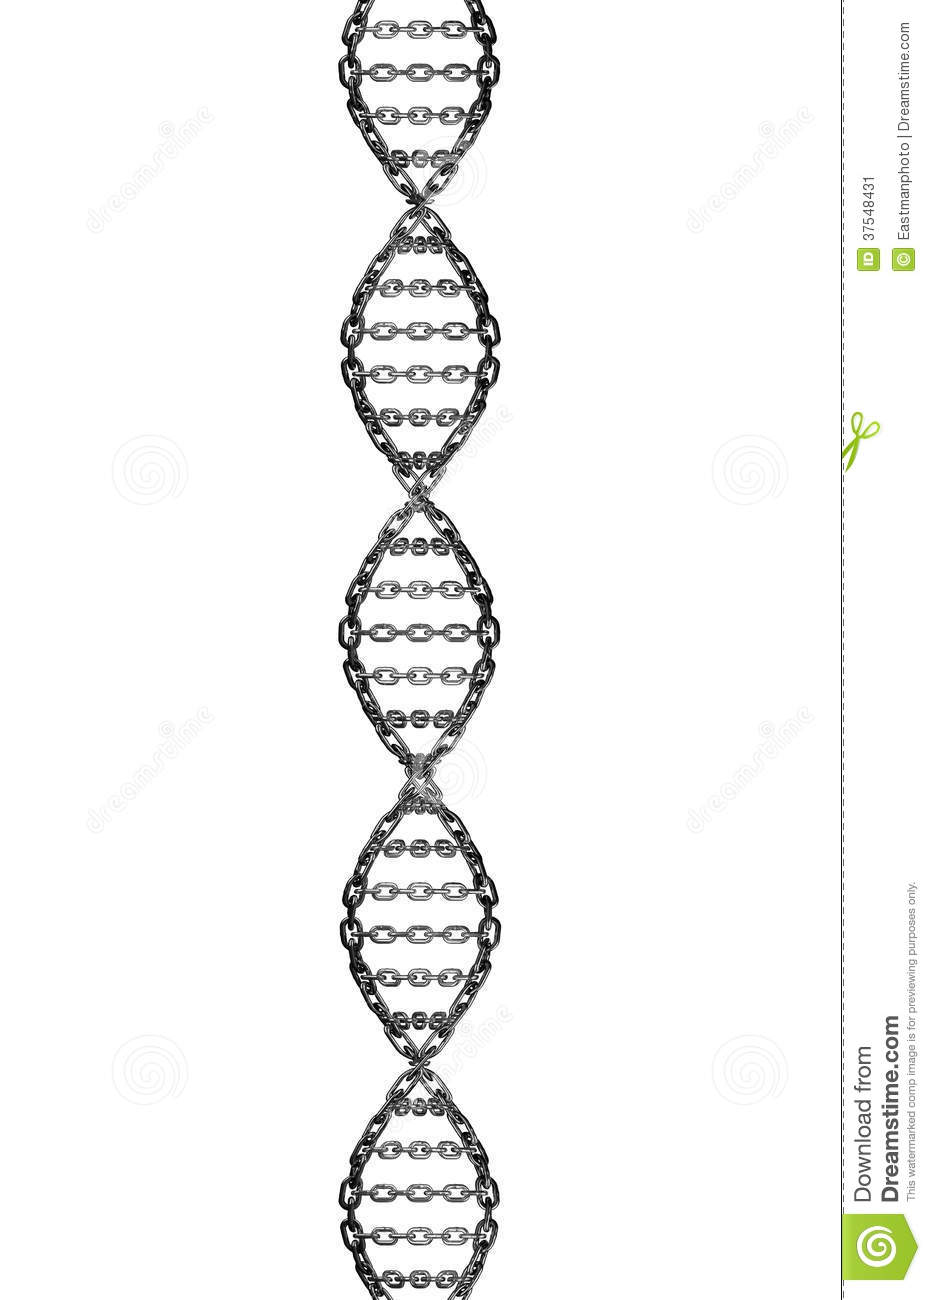 dna helix metal chain link stock illustration  image of